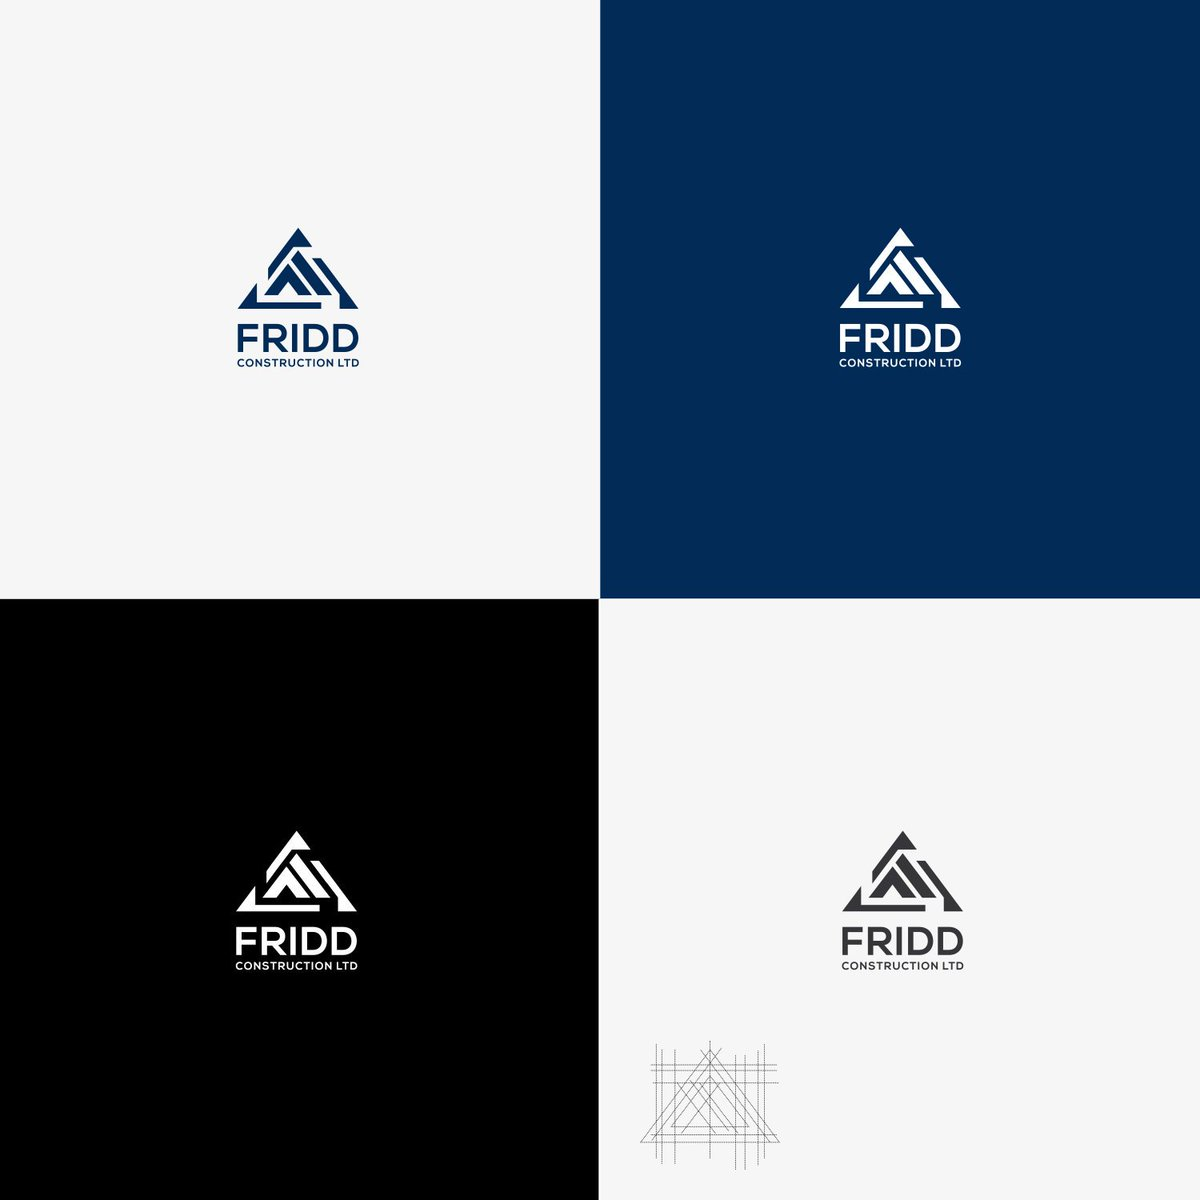 Luke Leo On Twitter Logo Design For A Construction Company If You